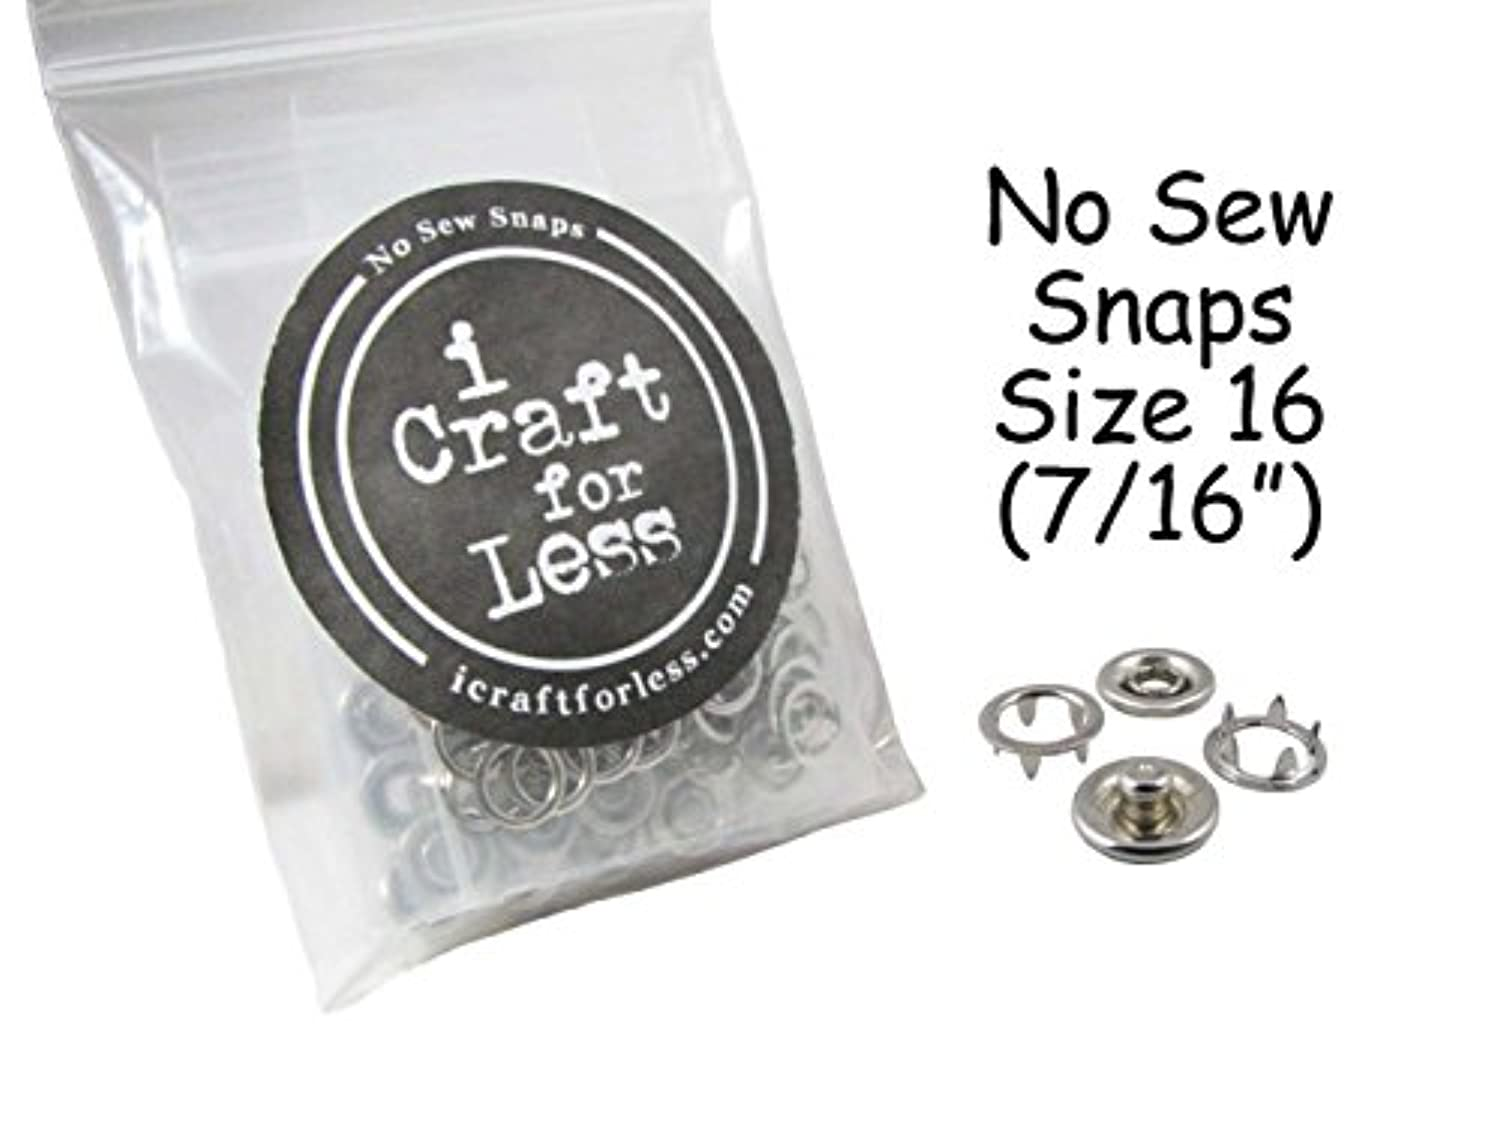 50 SETS - OPEN RING PRONG NO SEW SNAP FASTENERS (200 Pieces) - SIZE 16 (7/16